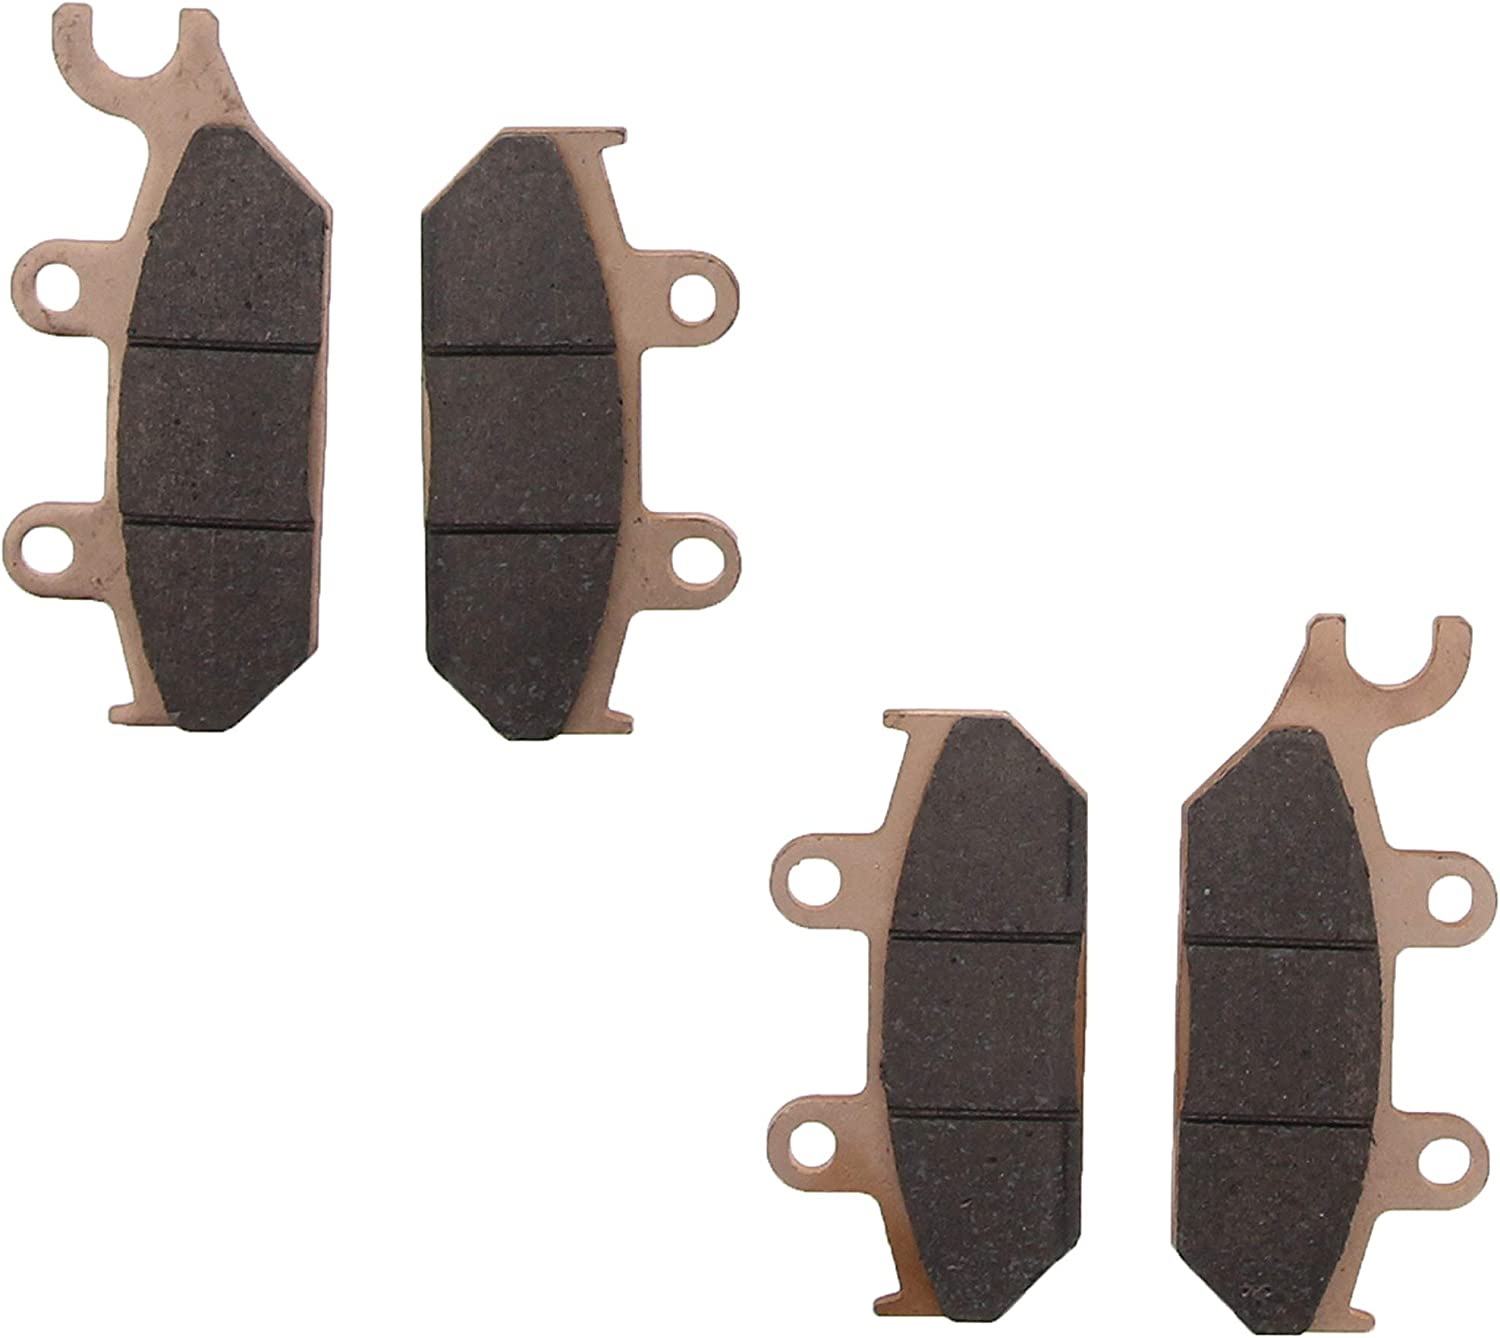 2015-2018 fits Can-Am Commander Max XT 1000 Front and Rear Mudrat Brake Pads